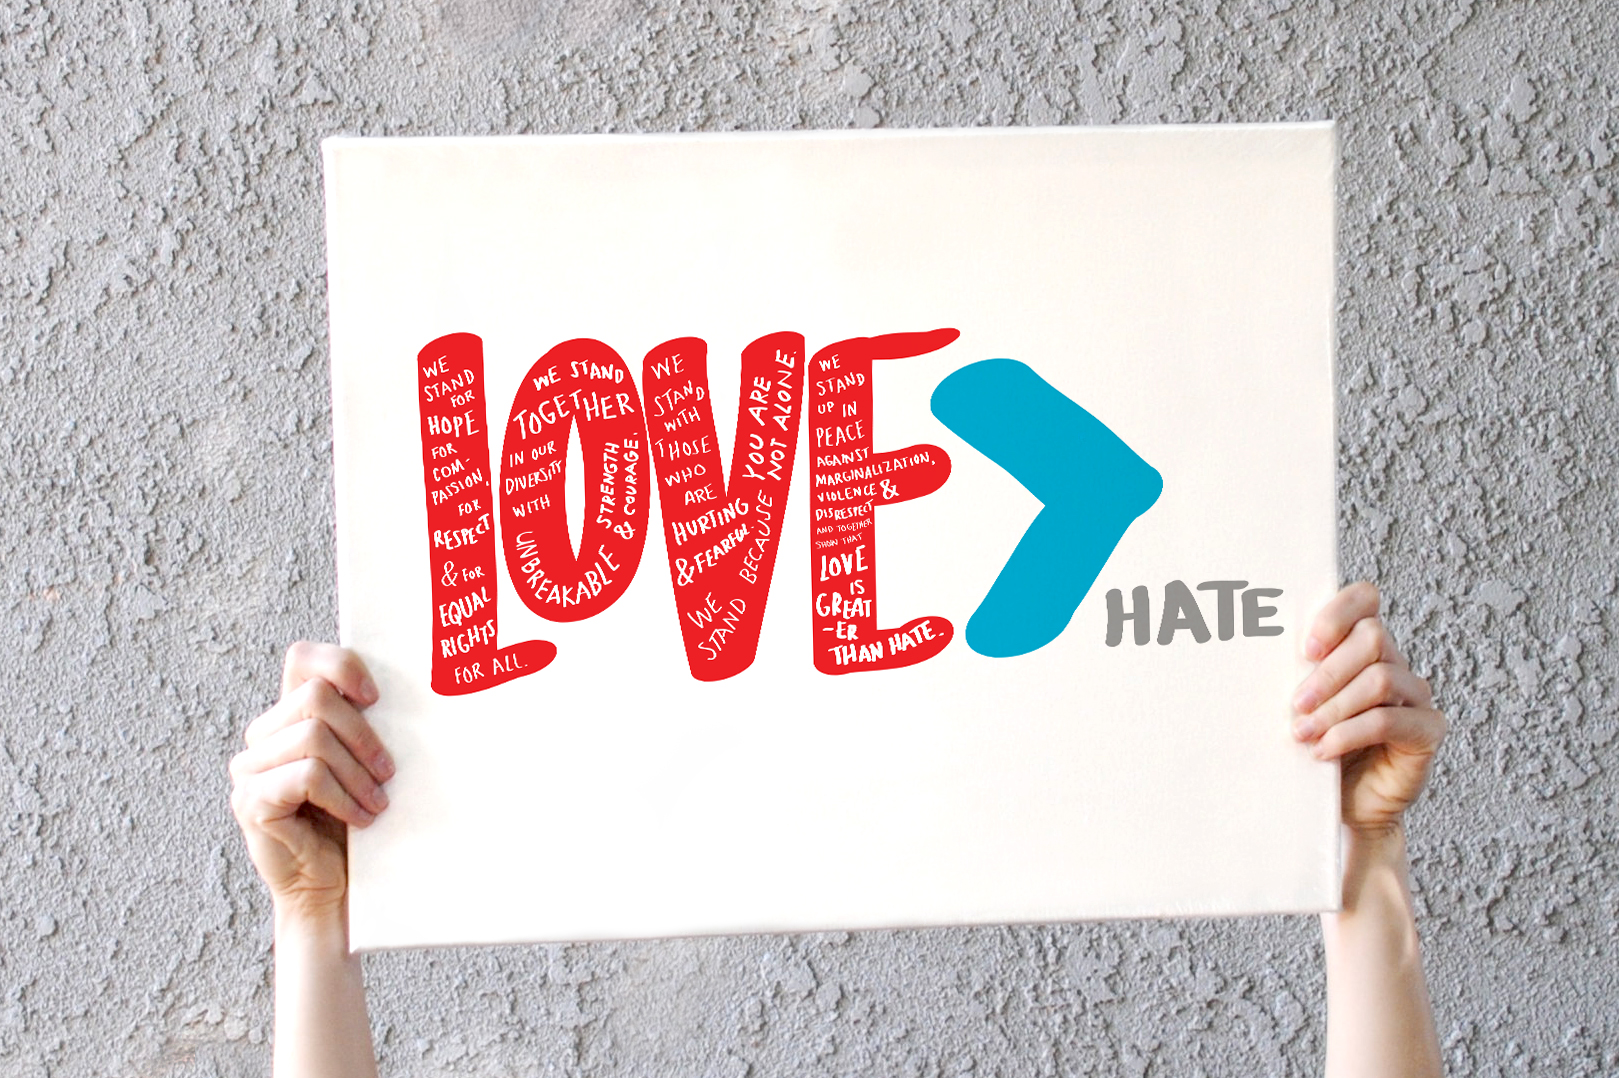 Show Love - Free downloads to print, post, share and display proudly.